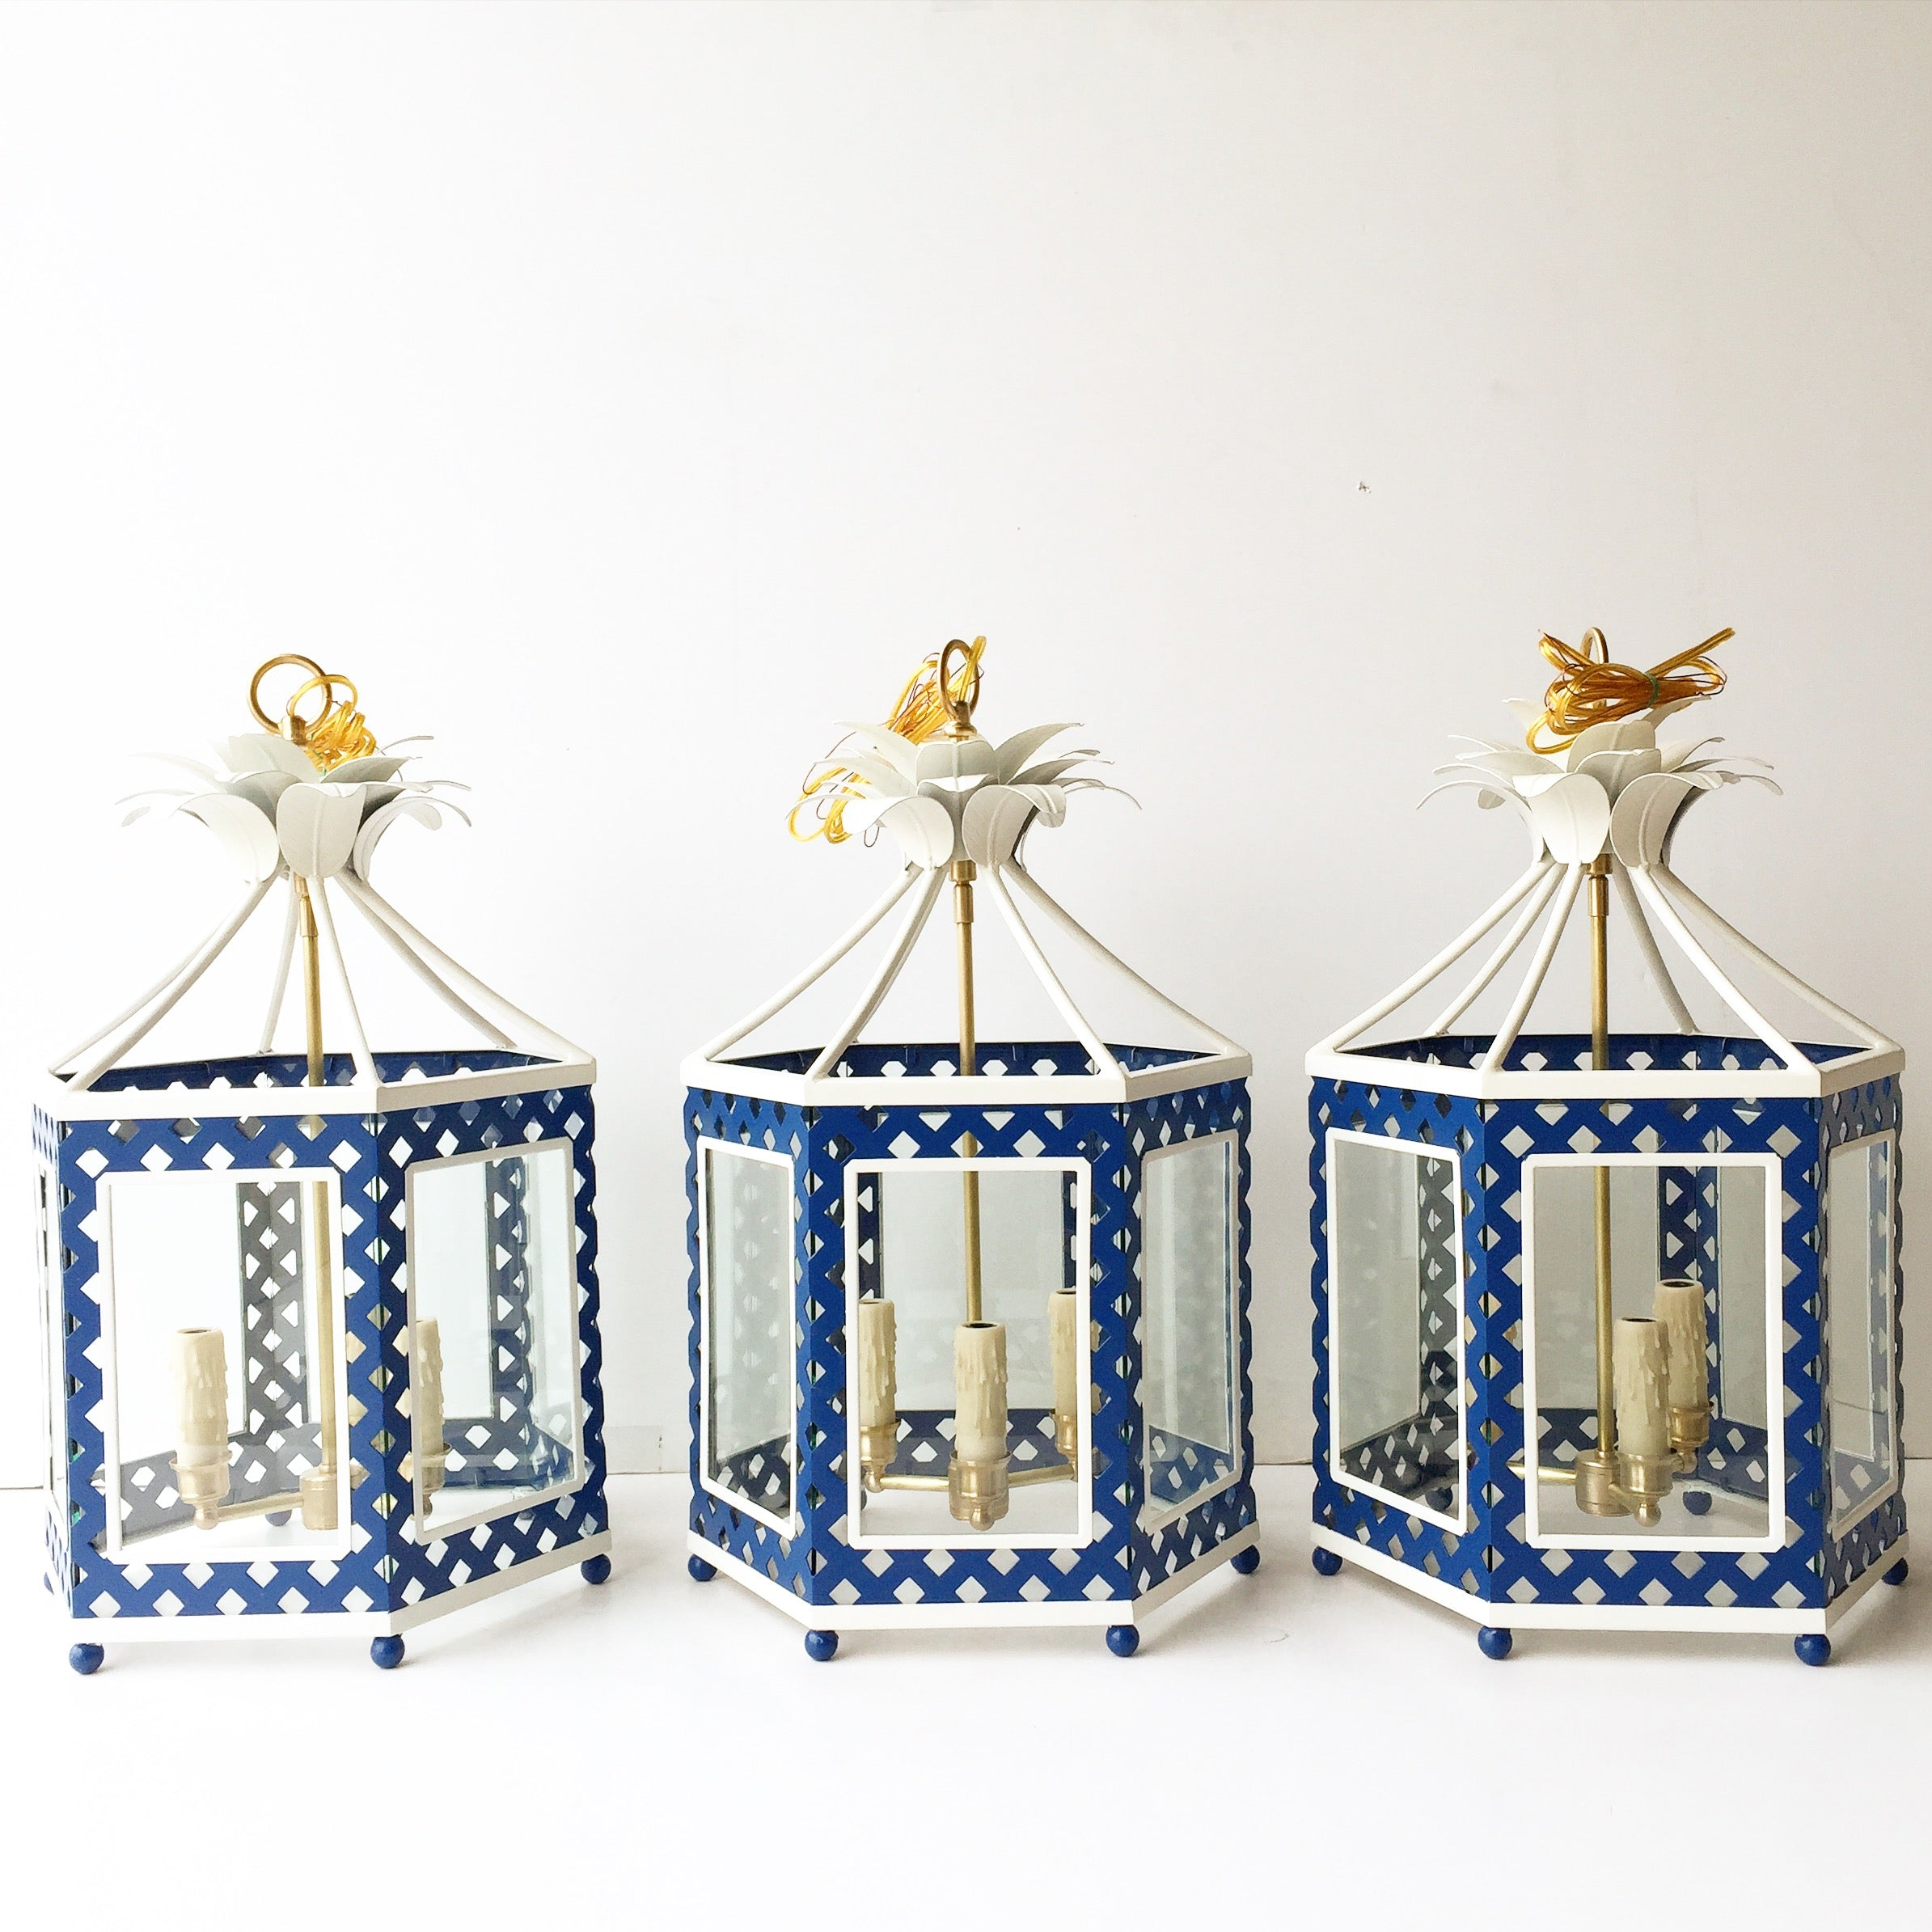 A Group of Elsie Lanterns in a Custom Blue & White